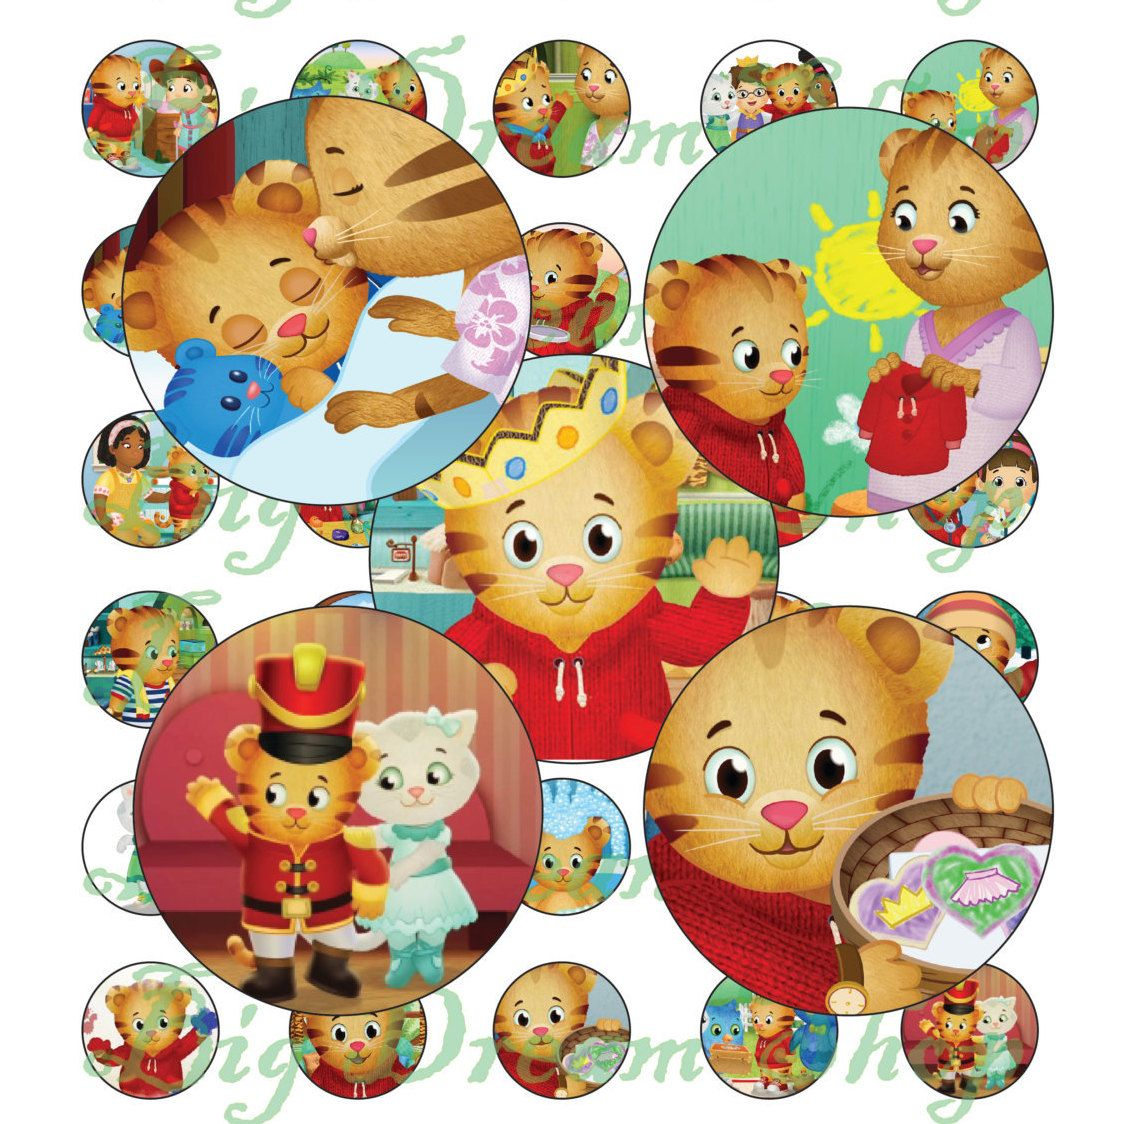 40 - Daniel Tiger's Neighborhood party stickers digital collage sheet 1'' A4 craft printable pendants bottle cap images pendant by BigDreamShop on Etsy